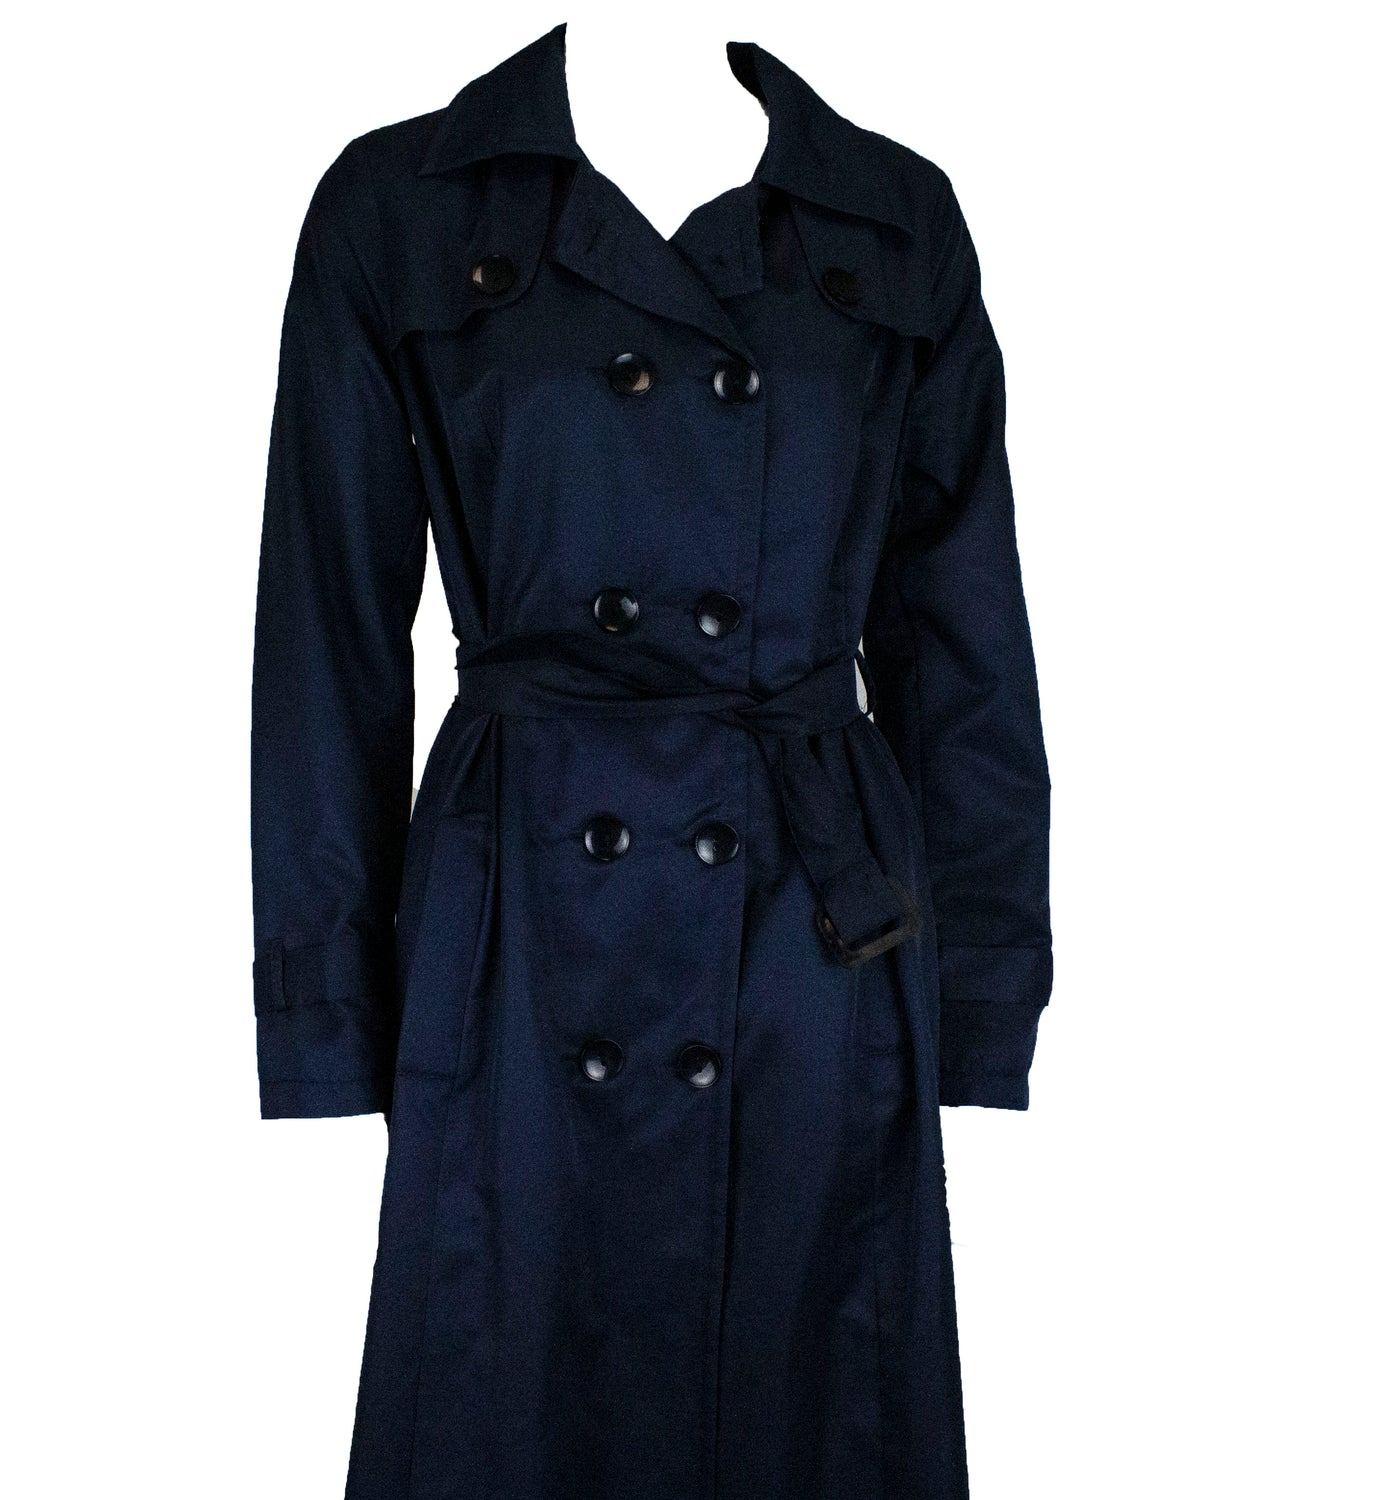 navy blue trench coat with buttons and a waist tie